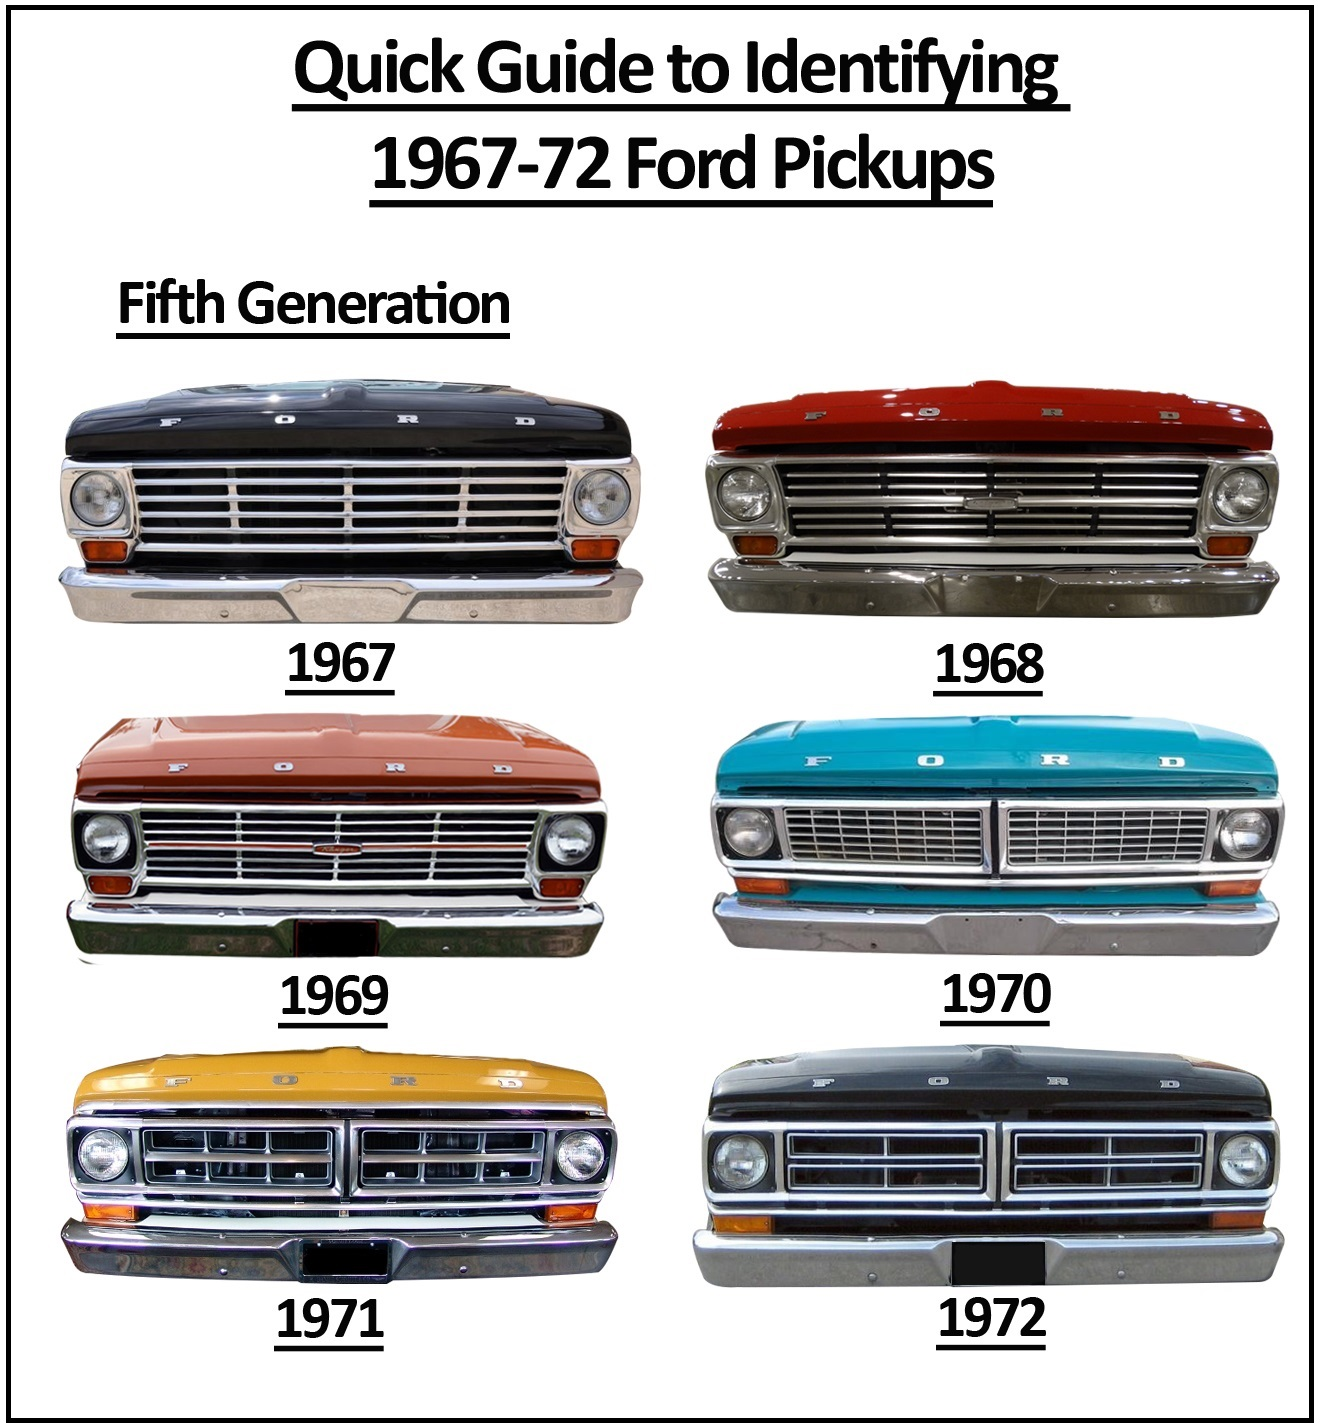 ride guides a quick guide to identifying 1967 72 ford. Black Bedroom Furniture Sets. Home Design Ideas